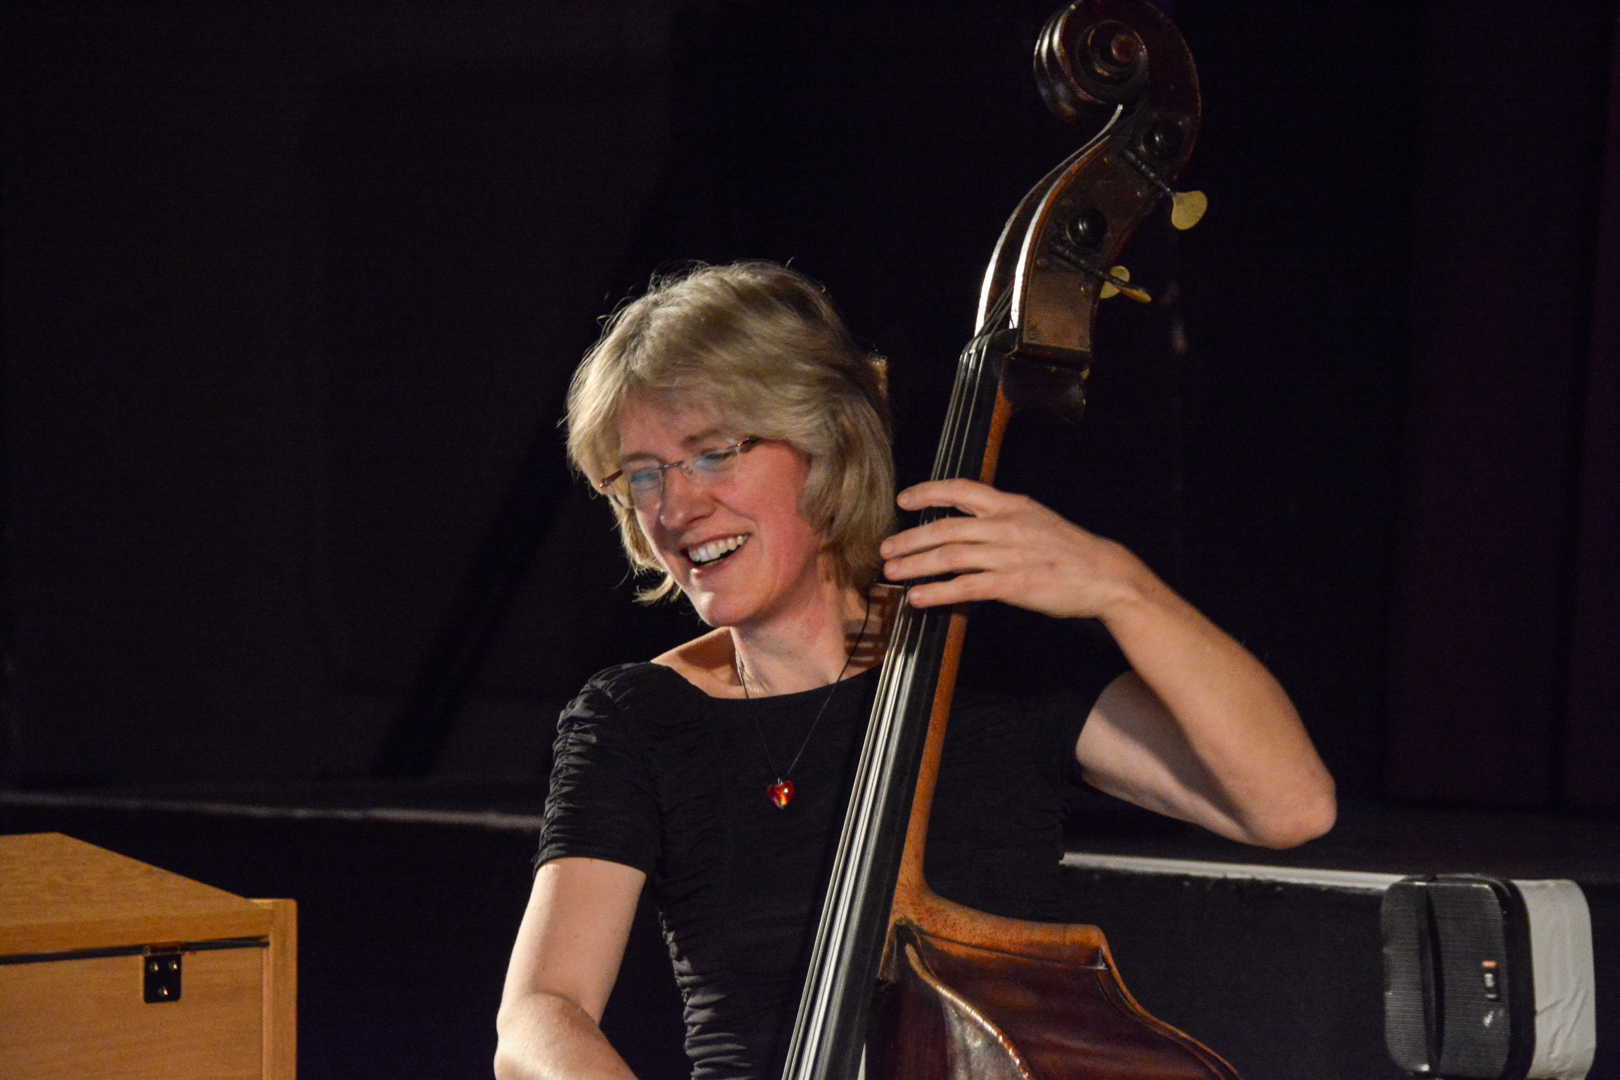 Marianne Windham, bass player, teacher and jazz promoter based in Guilford.